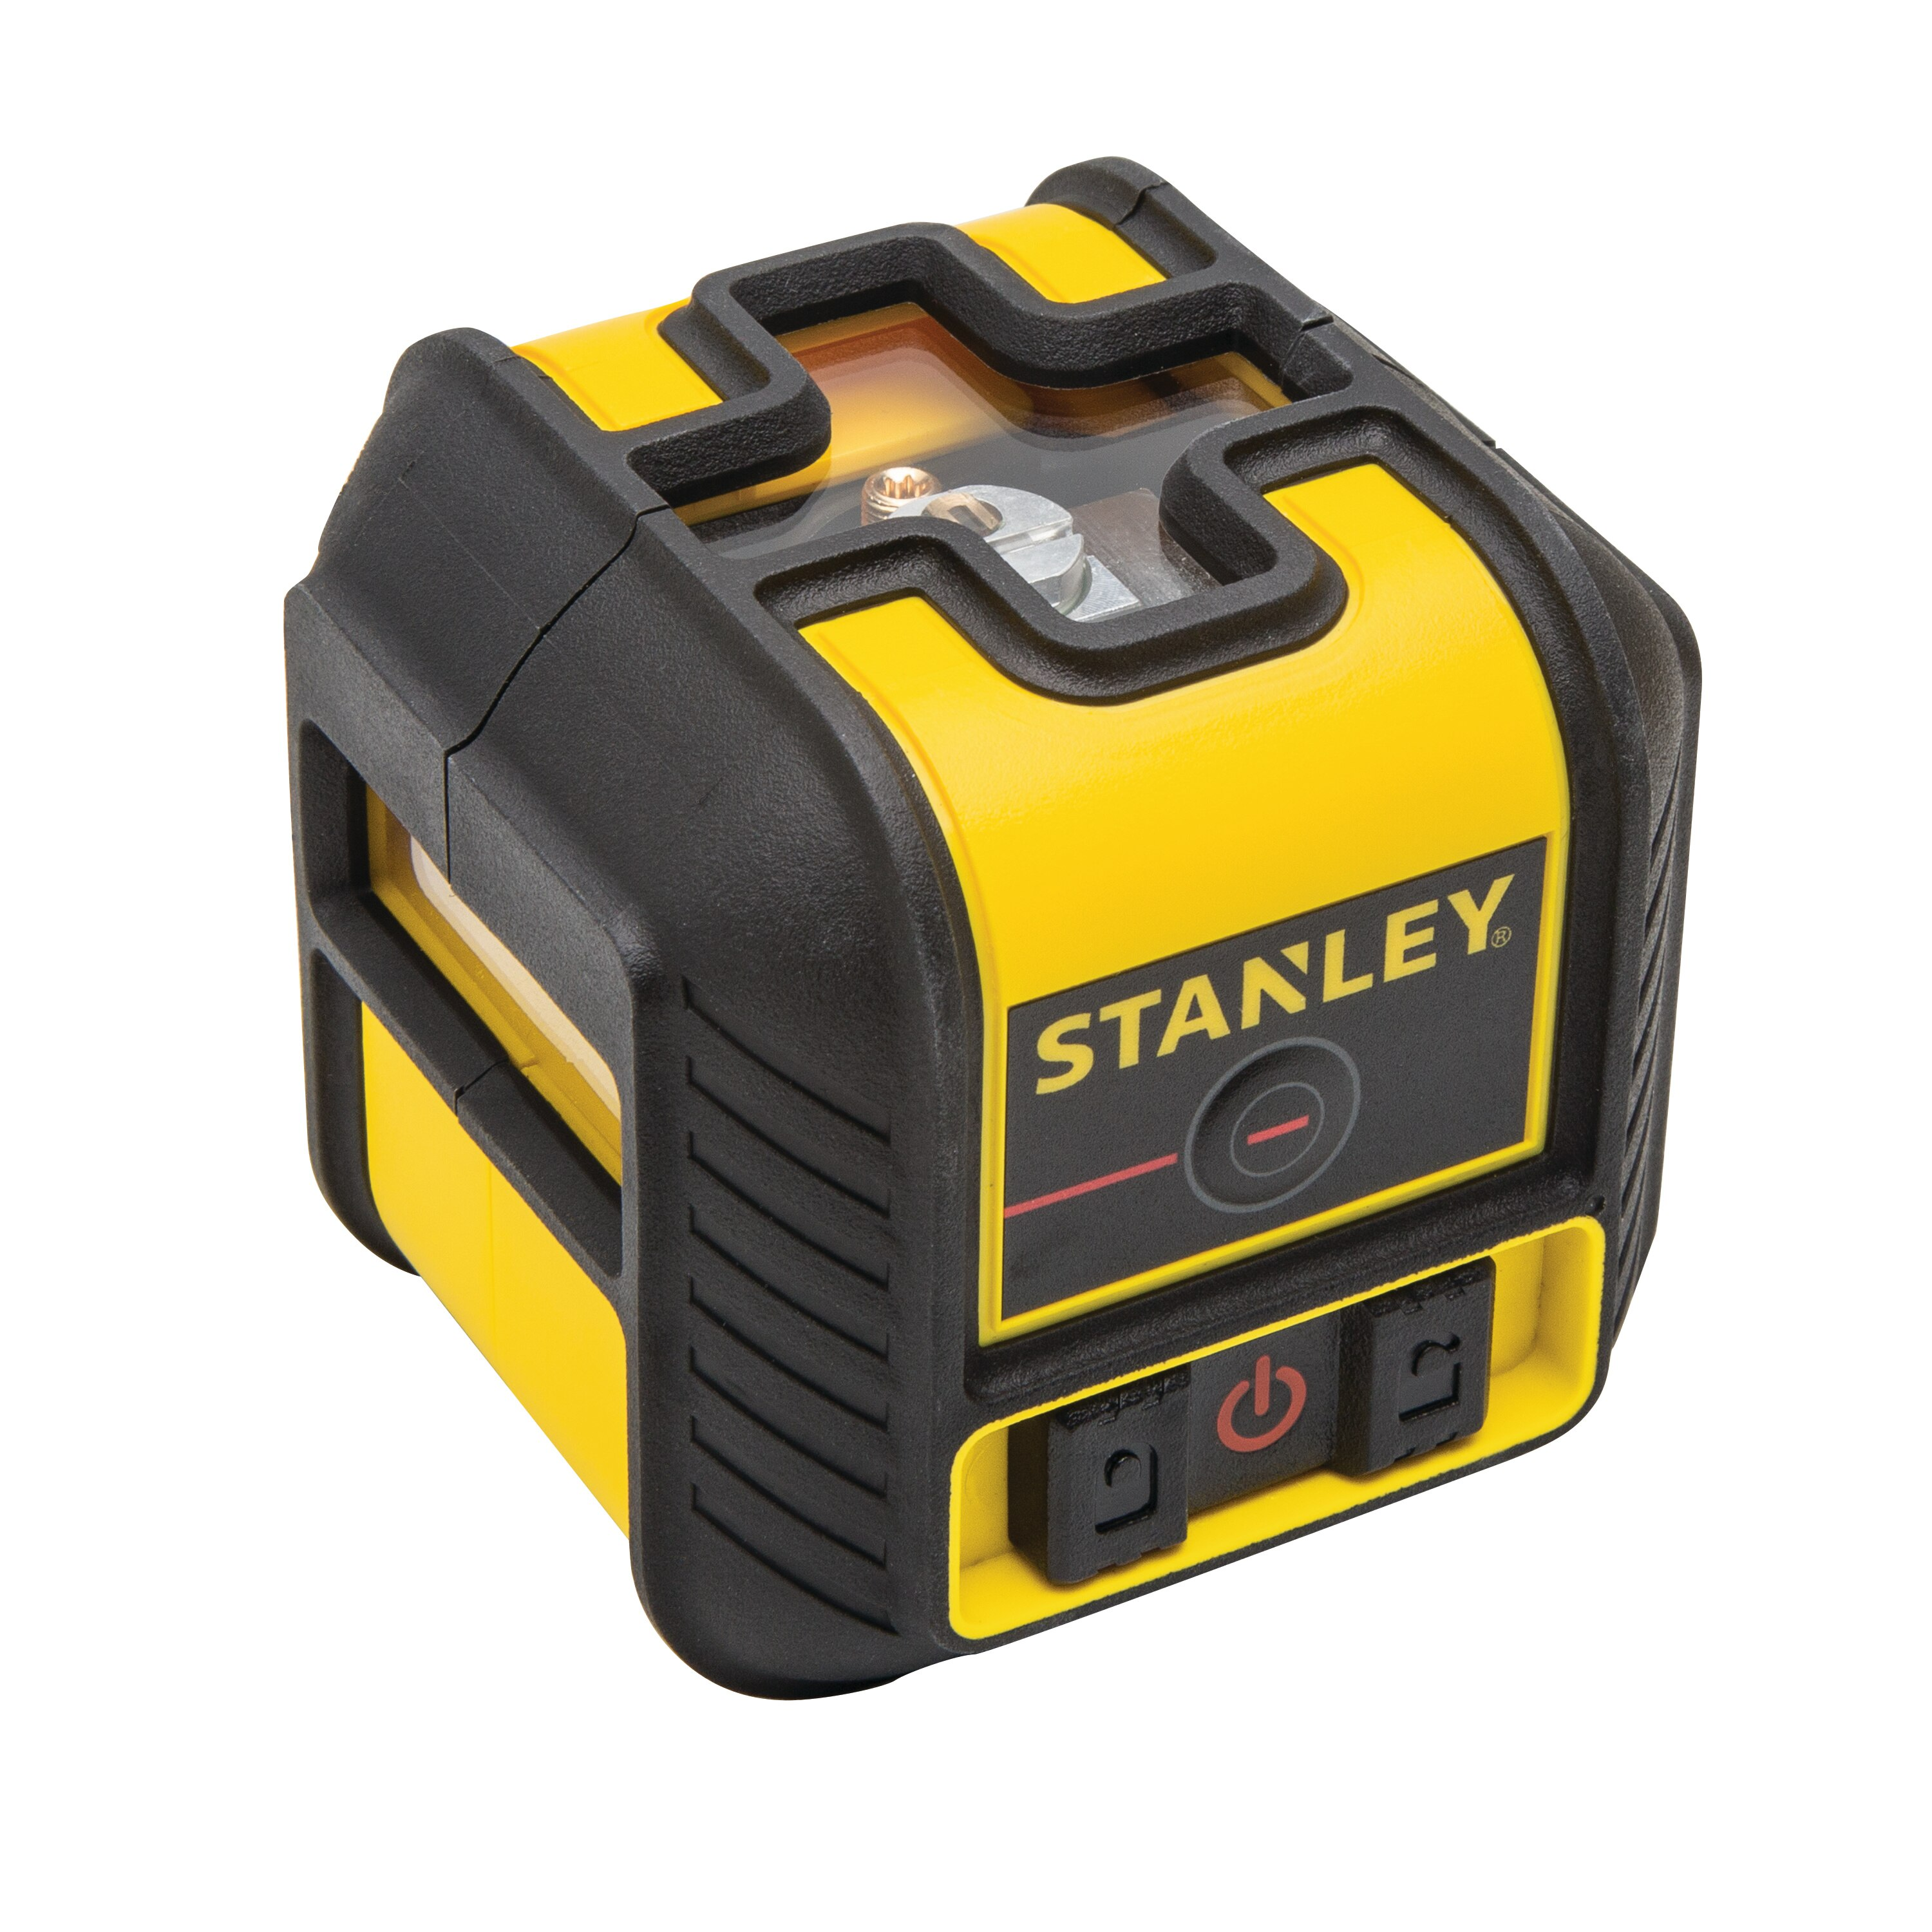 Stanley Tools - Cross90 Red Beam Multi Cross Line Laser Level - STHT77502